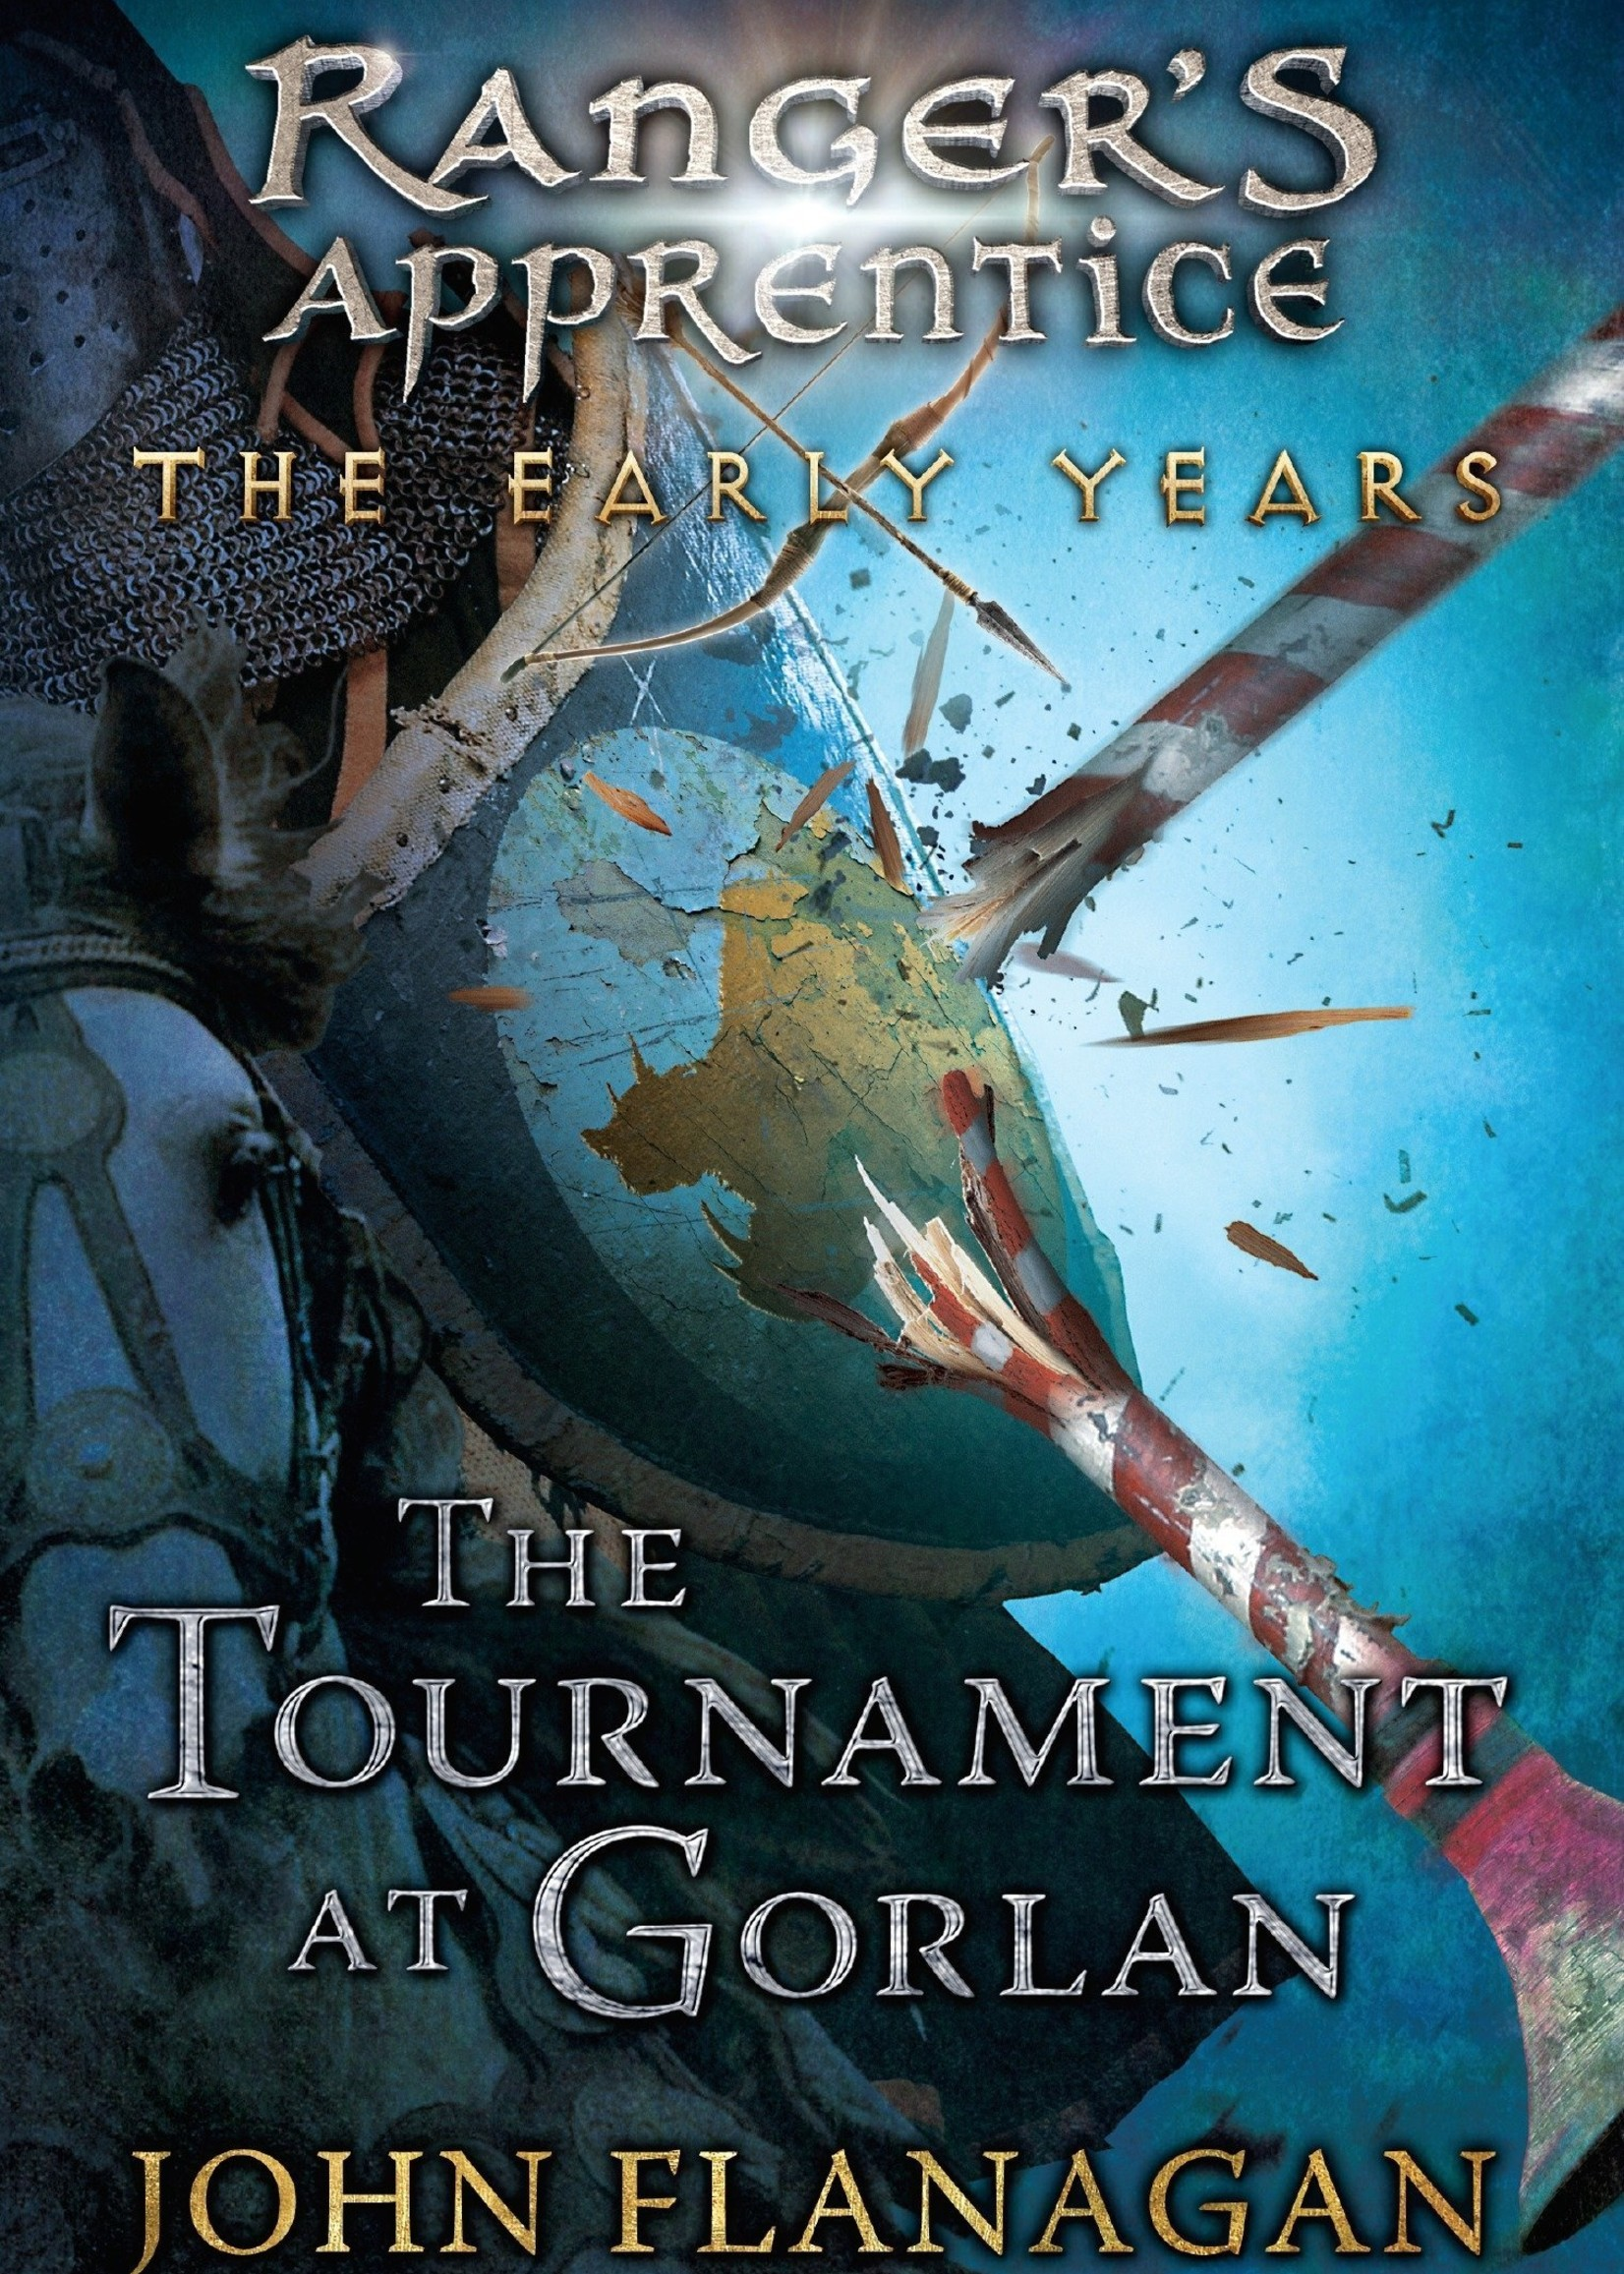 Ranger's Apprentice, The Early Years #01, The Tournament at Gorlan - Paperback